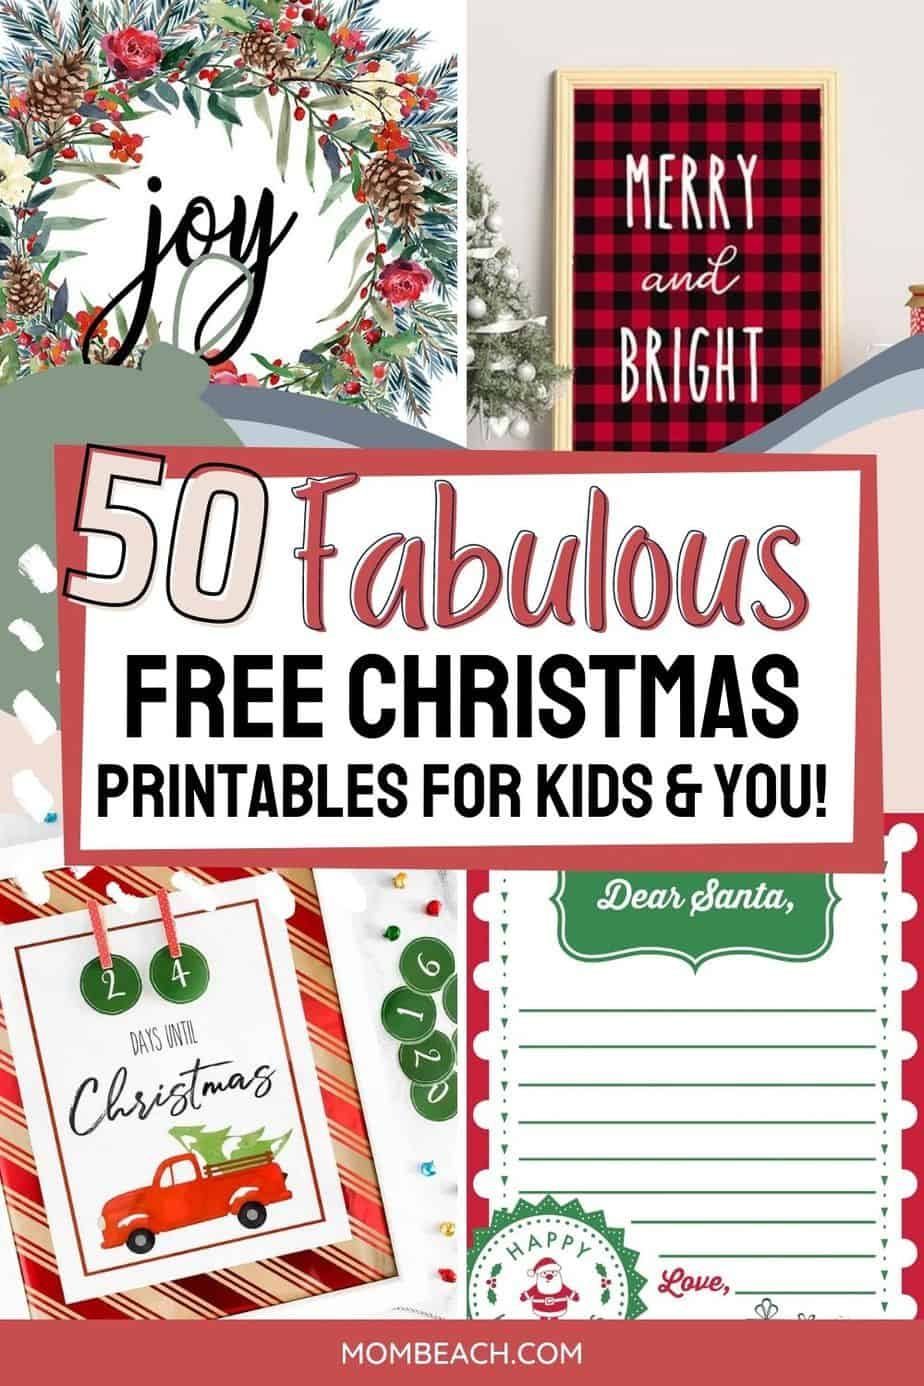 You won't believe how FABULOUS these 100% FREE Christmas printables for kids and you are! There are home decor Christmas printables, games, puzzles, tags, to frame, vintage, coloring sheets, Dear Santa lists, and MORE! Enjoy these free to print out on your home printer at home. Save money by using these free printables for decorating your home and keeping your kids entertained.